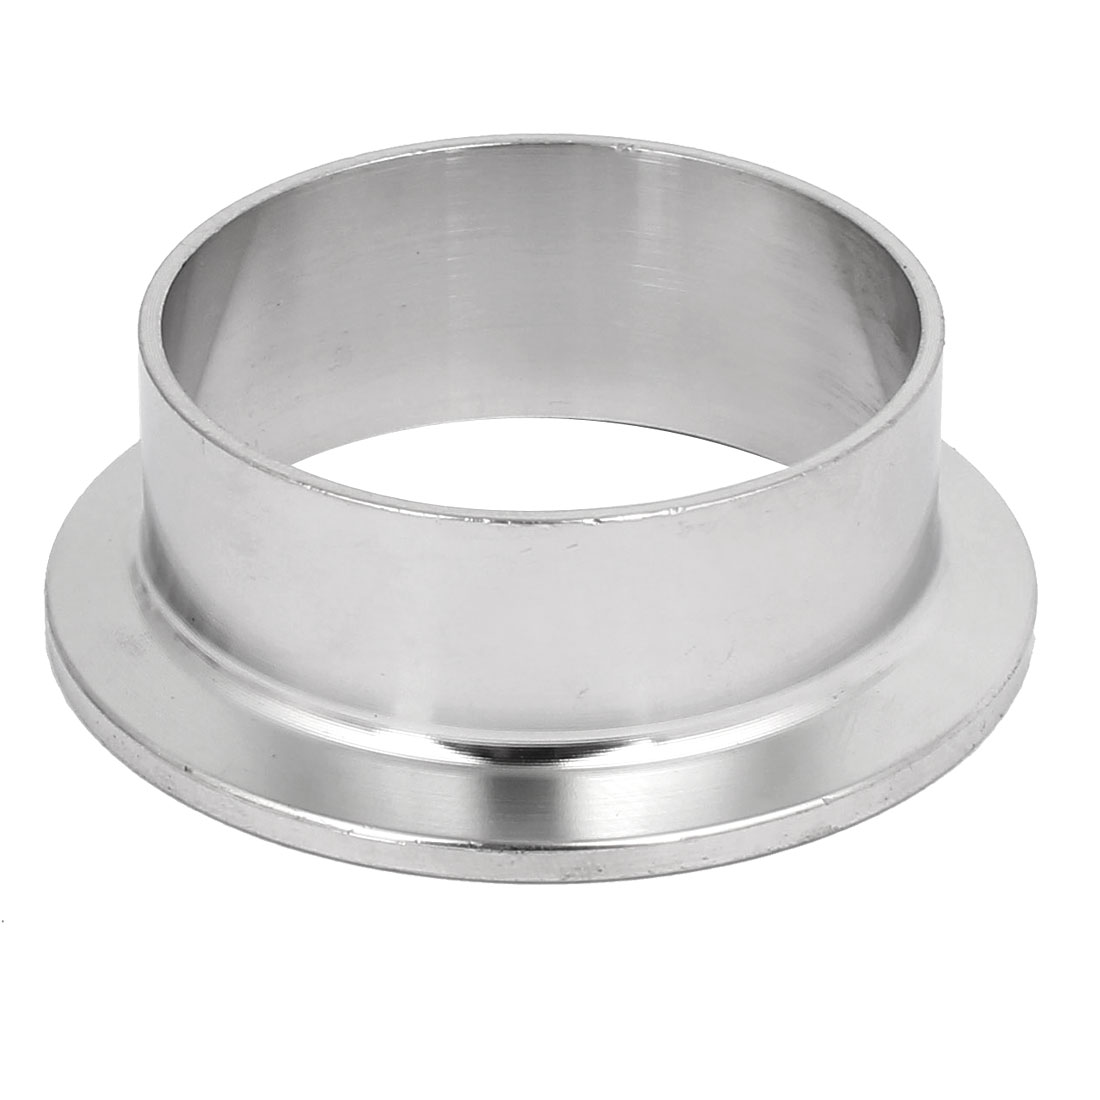 304 Stainless Steel 51mm OD Sanitary Pipe Weld on Ferrule Fits 2 Tri Clamp 273mm od sanitary weld on 286mm ferrule tri clamp stainless steel welding pipe fitting ss304 sw 273 page 3